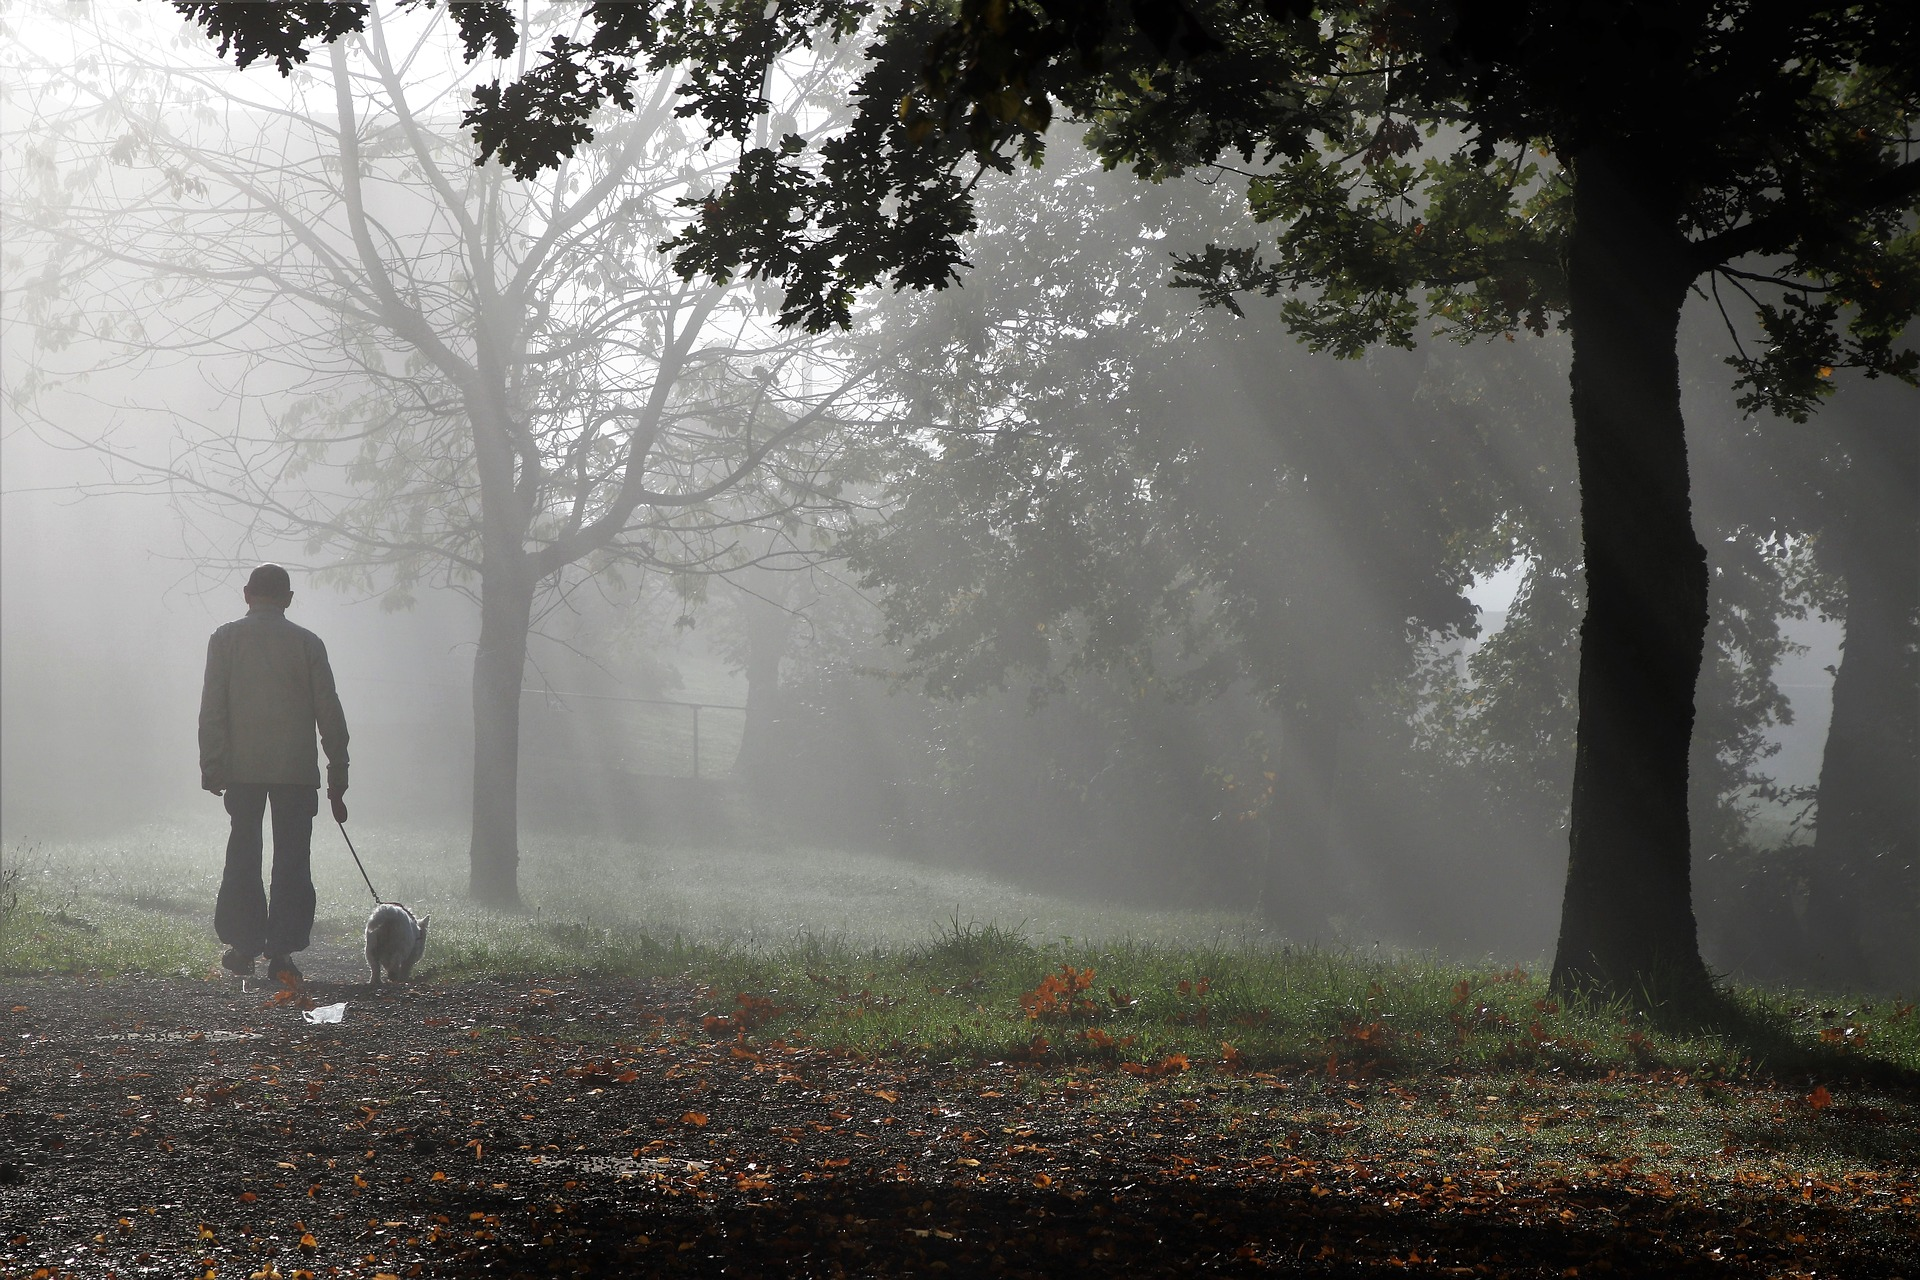 A man walking a dog on a leash through a foggy forest